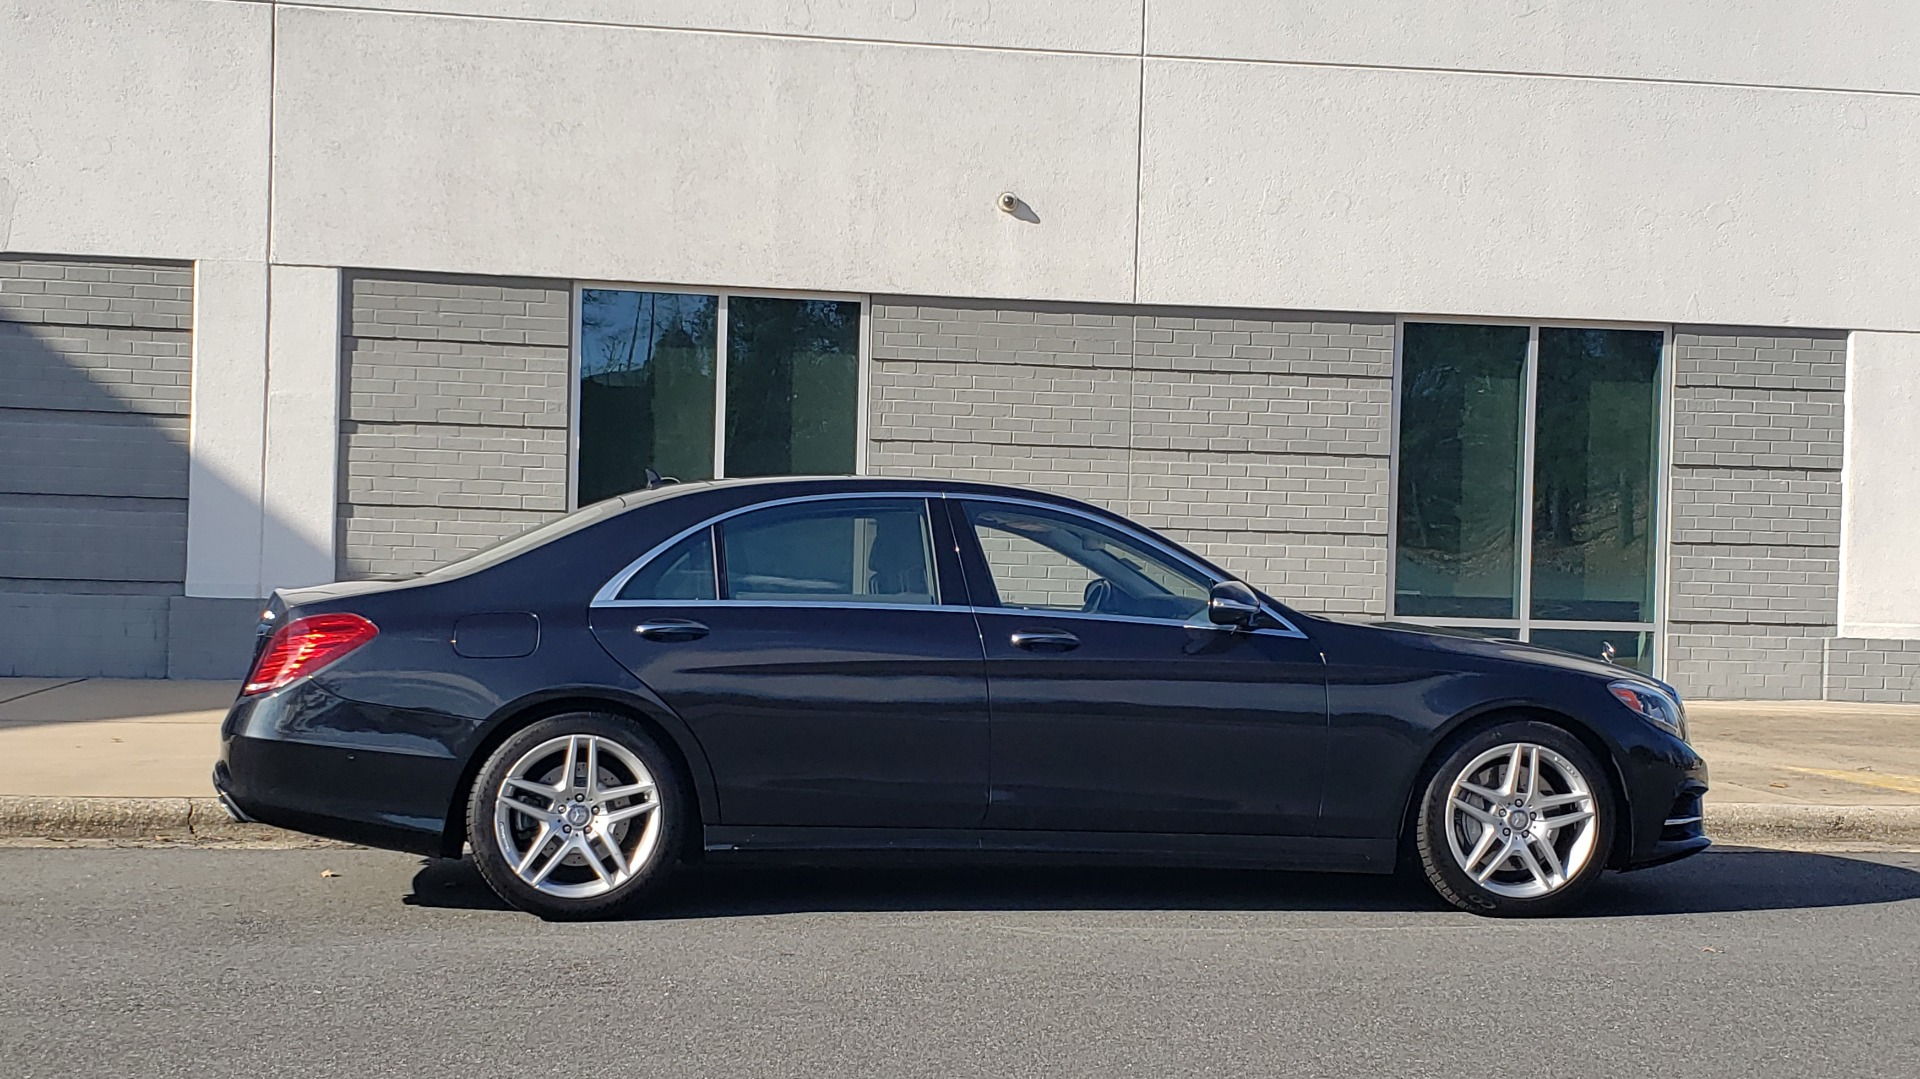 Used 2015 Mercedes-Benz S-CLASS S 550 PREMIUM / SPORT / WARMTH&COMFORT / DRVR ASST / SRND VIEW for sale Sold at Formula Imports in Charlotte NC 28227 7